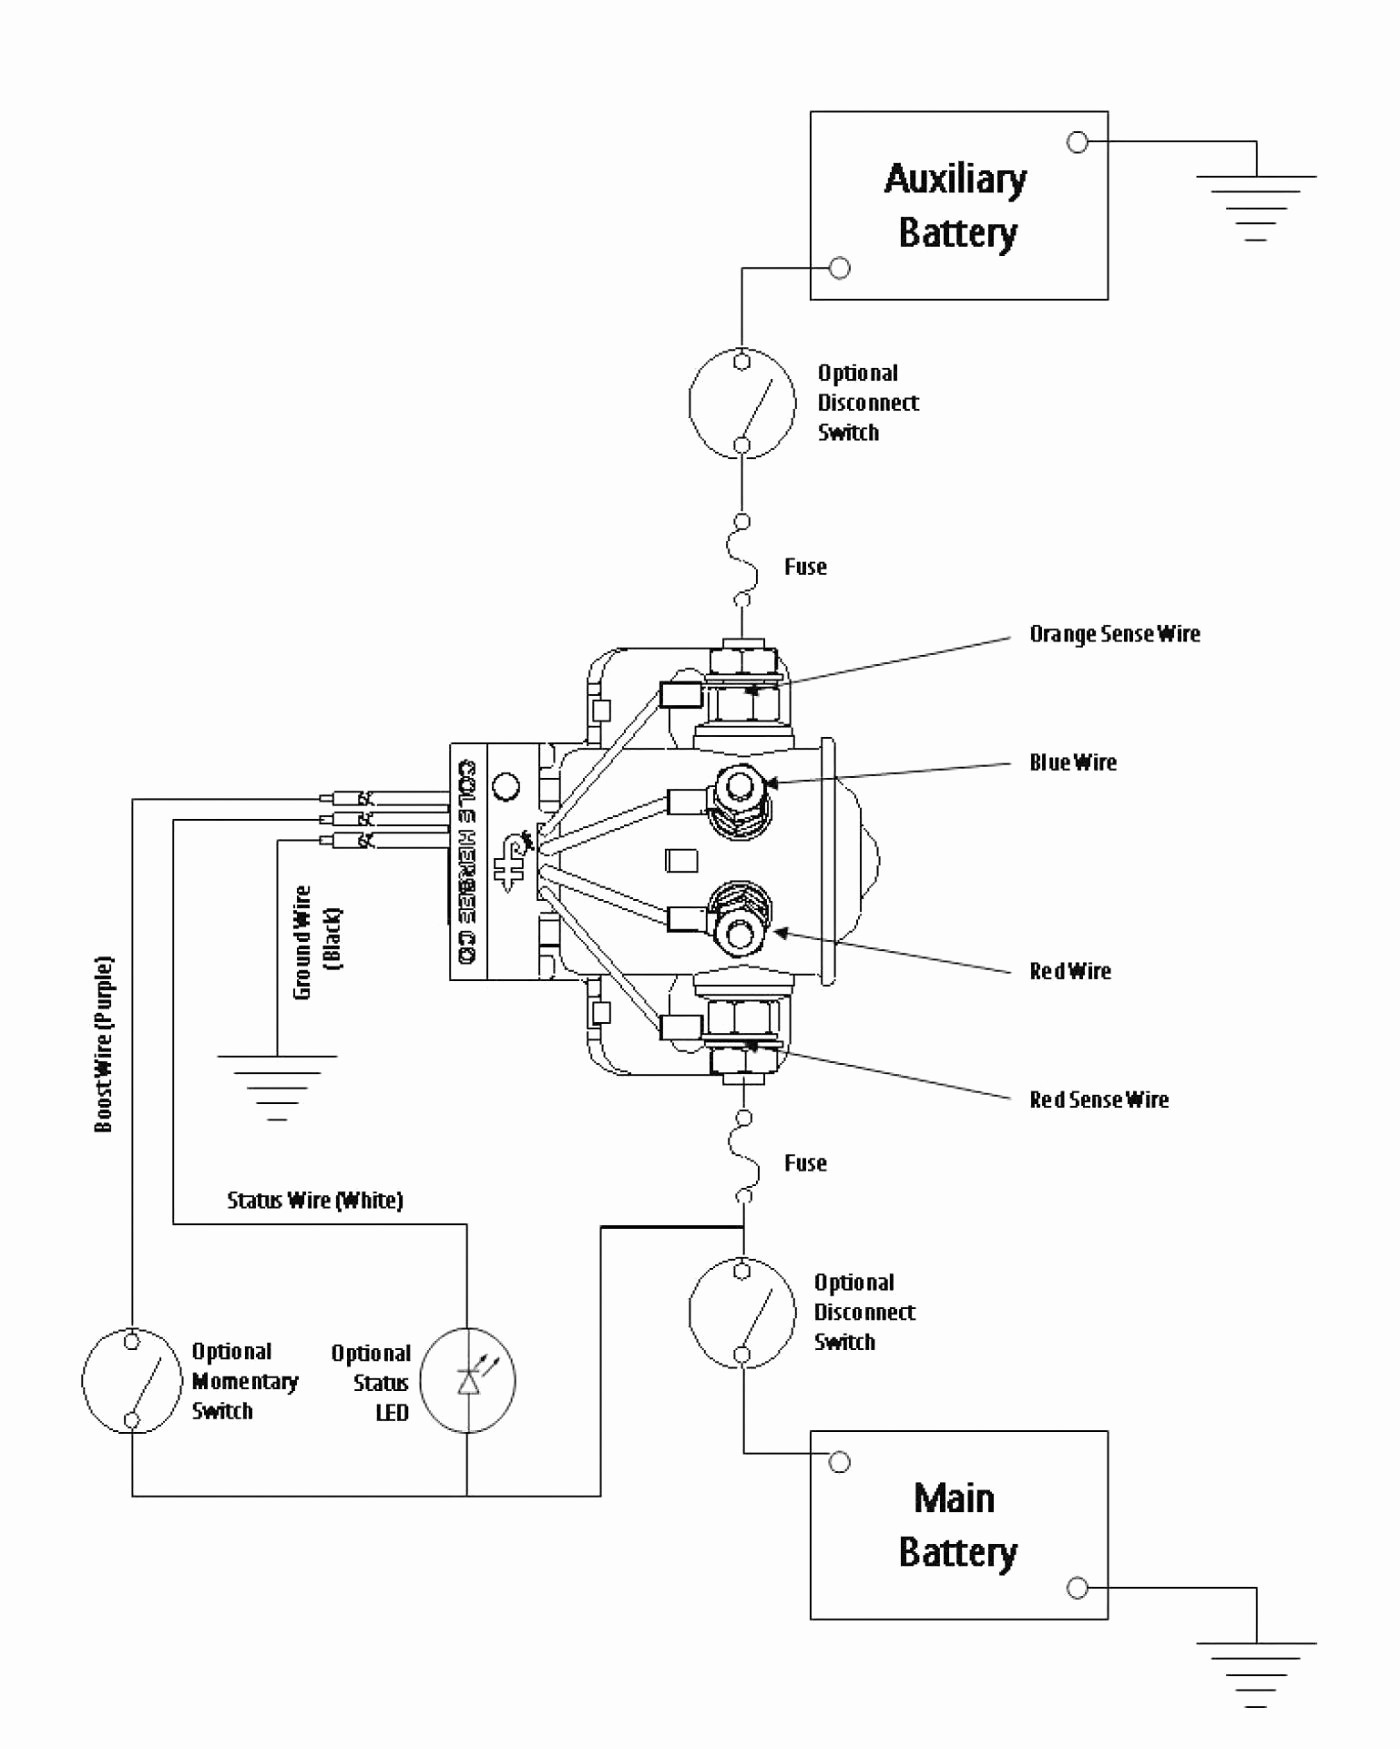 Wiring Diagram for Float Switch Fresh Wiring Diagram toggle Switch Wiring Diagram Fresh Spst toggle